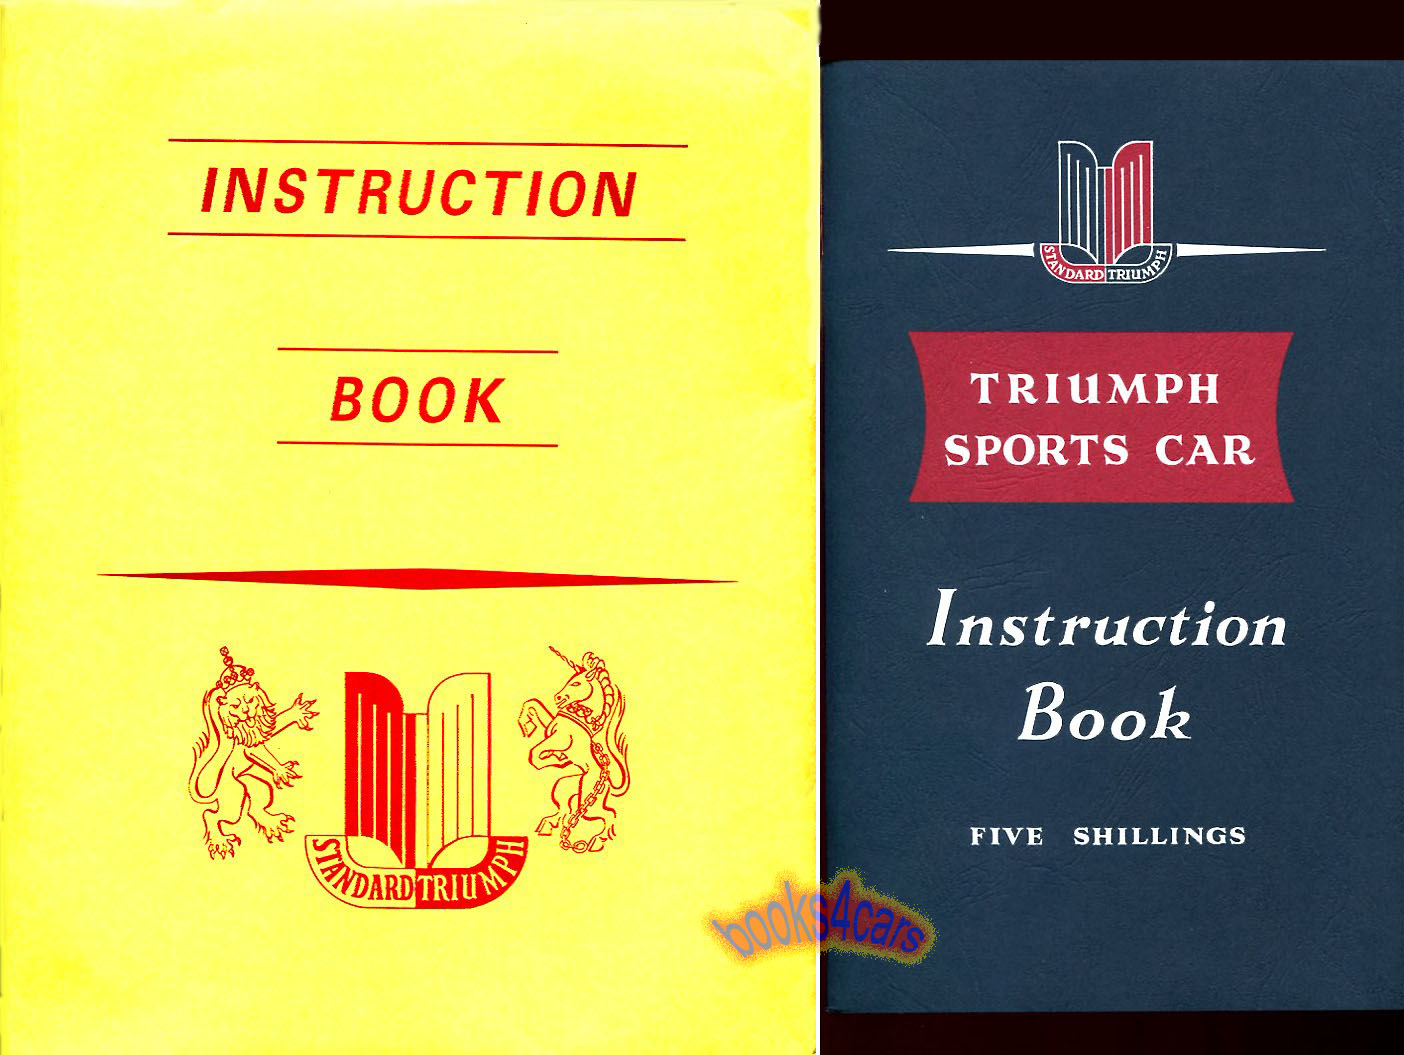 REAL BOOK Owners Manual Book by Triumph complete with special envelope  pouch. Book is in New, never-opened condition